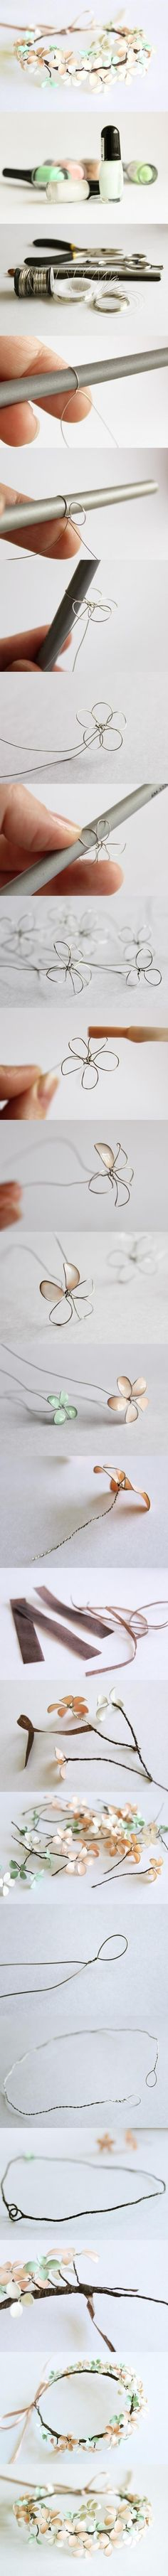 Amazing! Make beautiful flowers from wire & nail polish!! There were no original written instructions, but for those looking for some: http://soresoftheopenheart.tumblr.com/post/75313399661/how-do-you-make-the-flowers-for-the-flower-crown-like